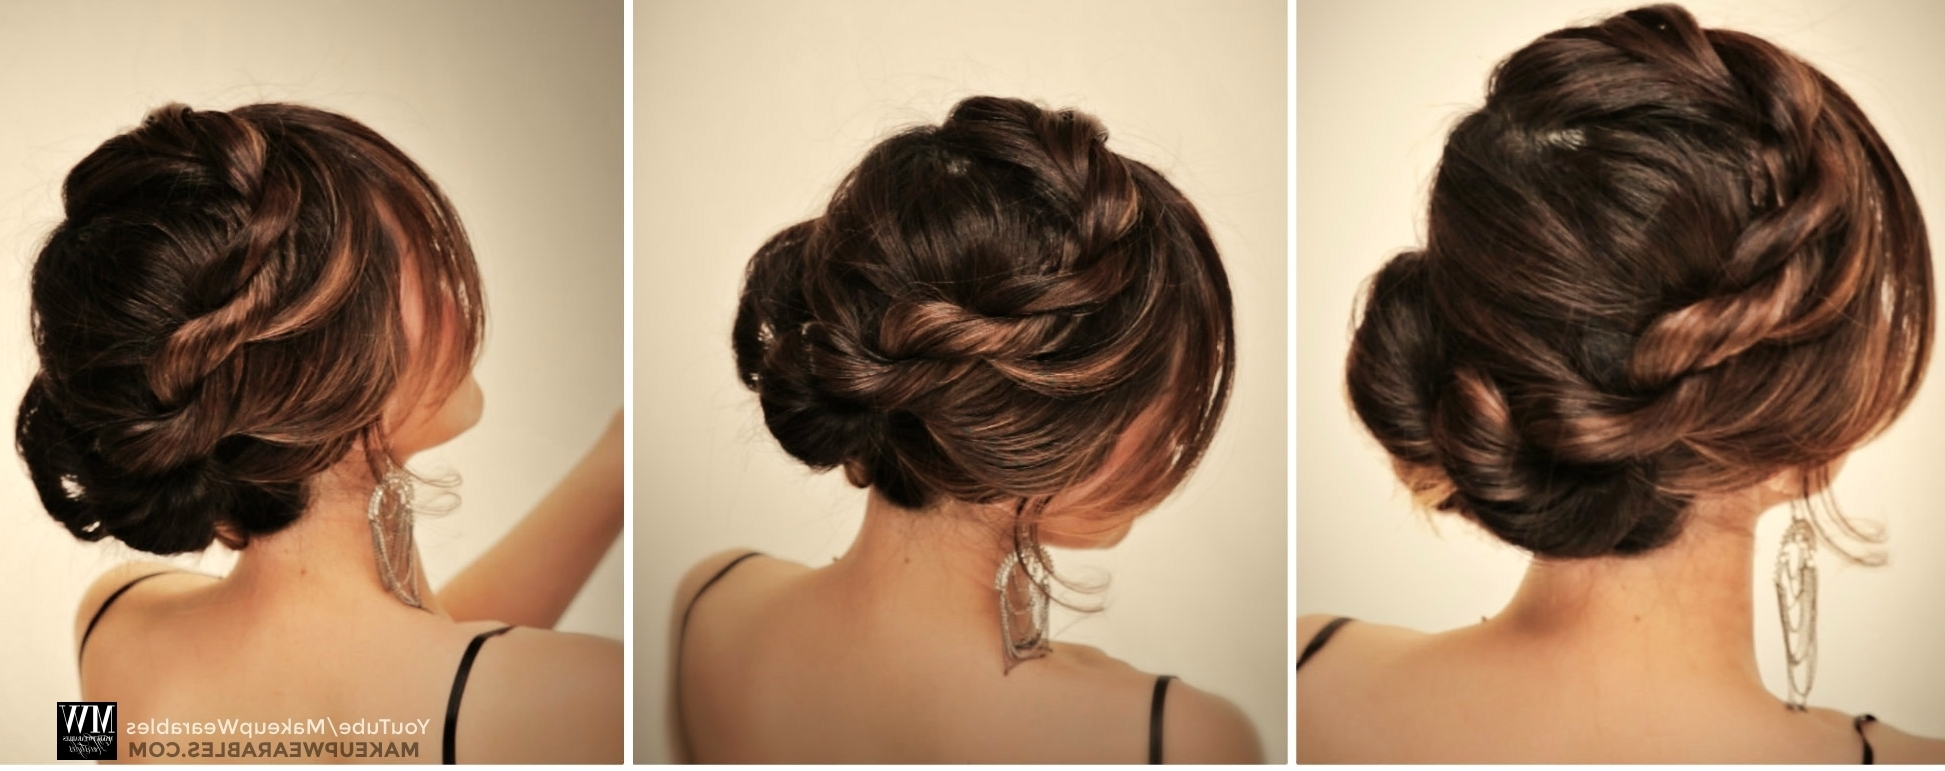 How To: 5 Amazingly Cute + Easy Hairstyles With A Simple Twist In Cute Easy Updo Hairstyles (View 9 of 15)